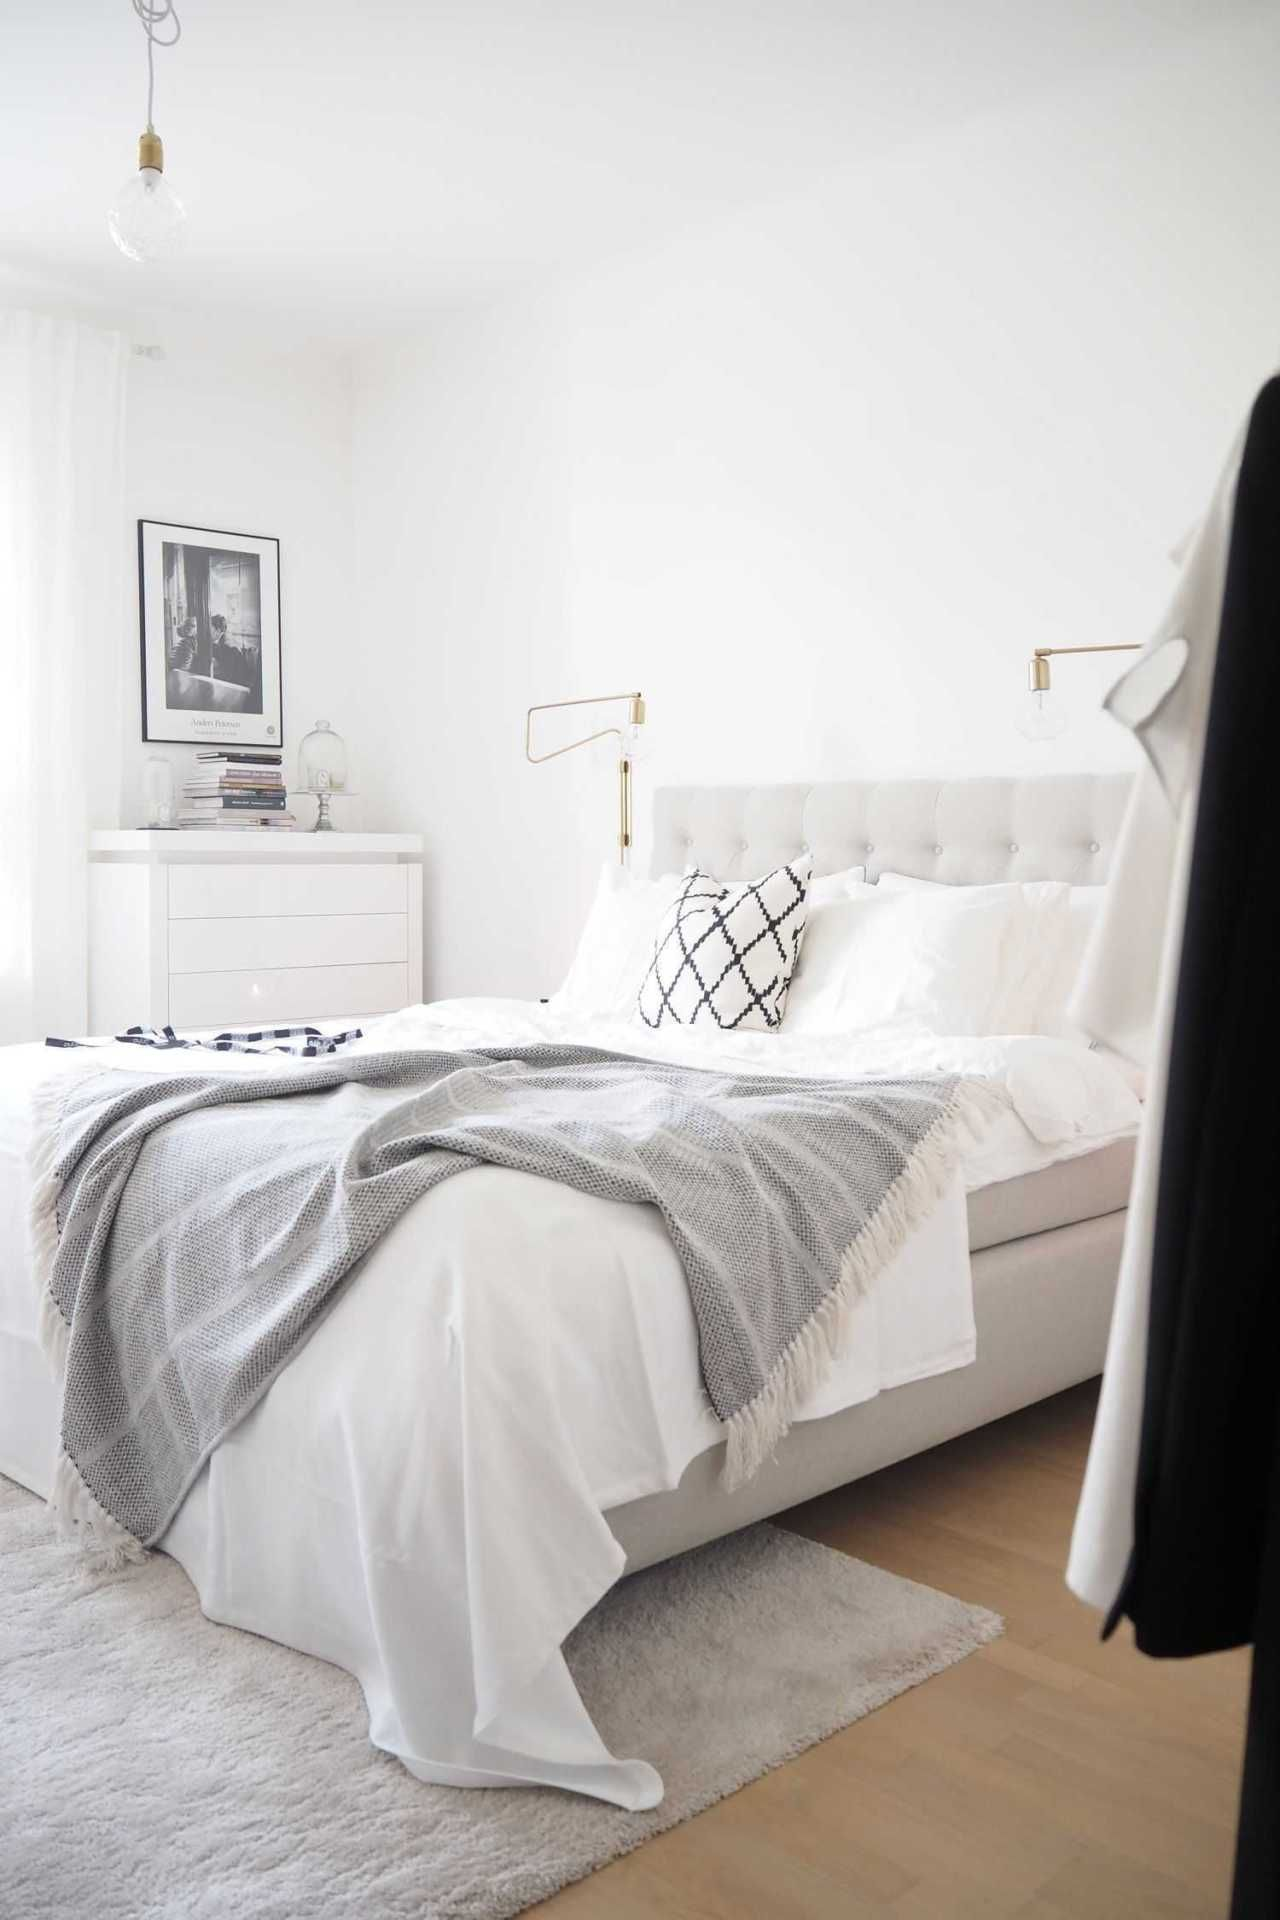 Bedroom Scandinavian Style Awesome Char And The City White Classic And Scandinavian Bedroom R Guest Bedroom Remodel Remodel Bedroom Scandinavian Design Bedroom